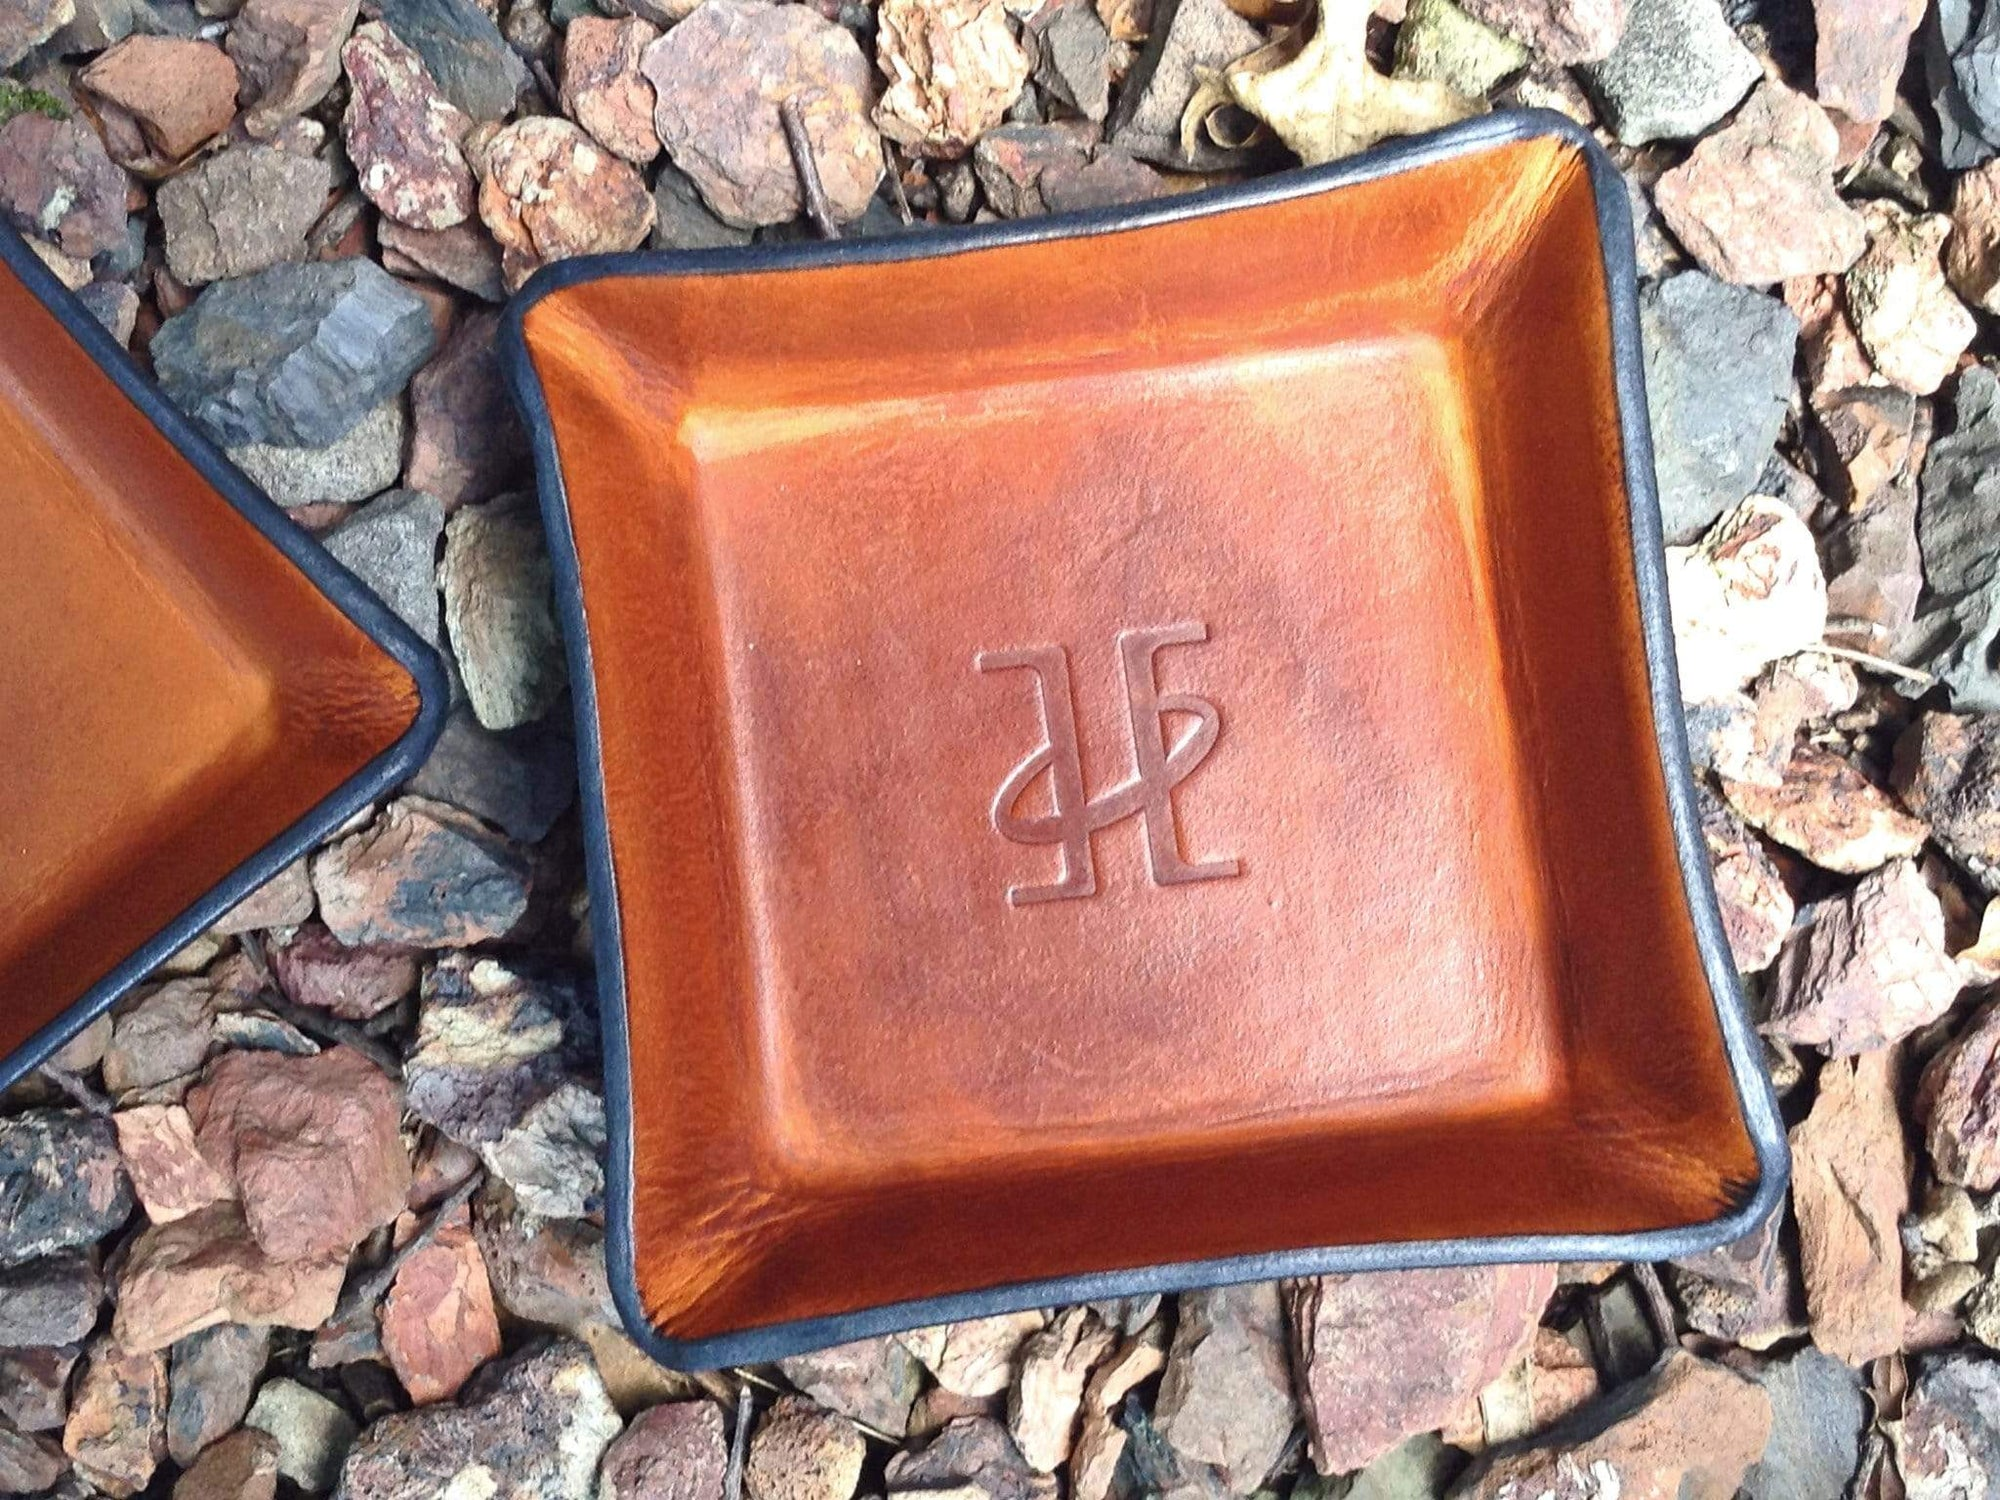 Tan Leather Valet Tray with Twin Saints Leather Logo